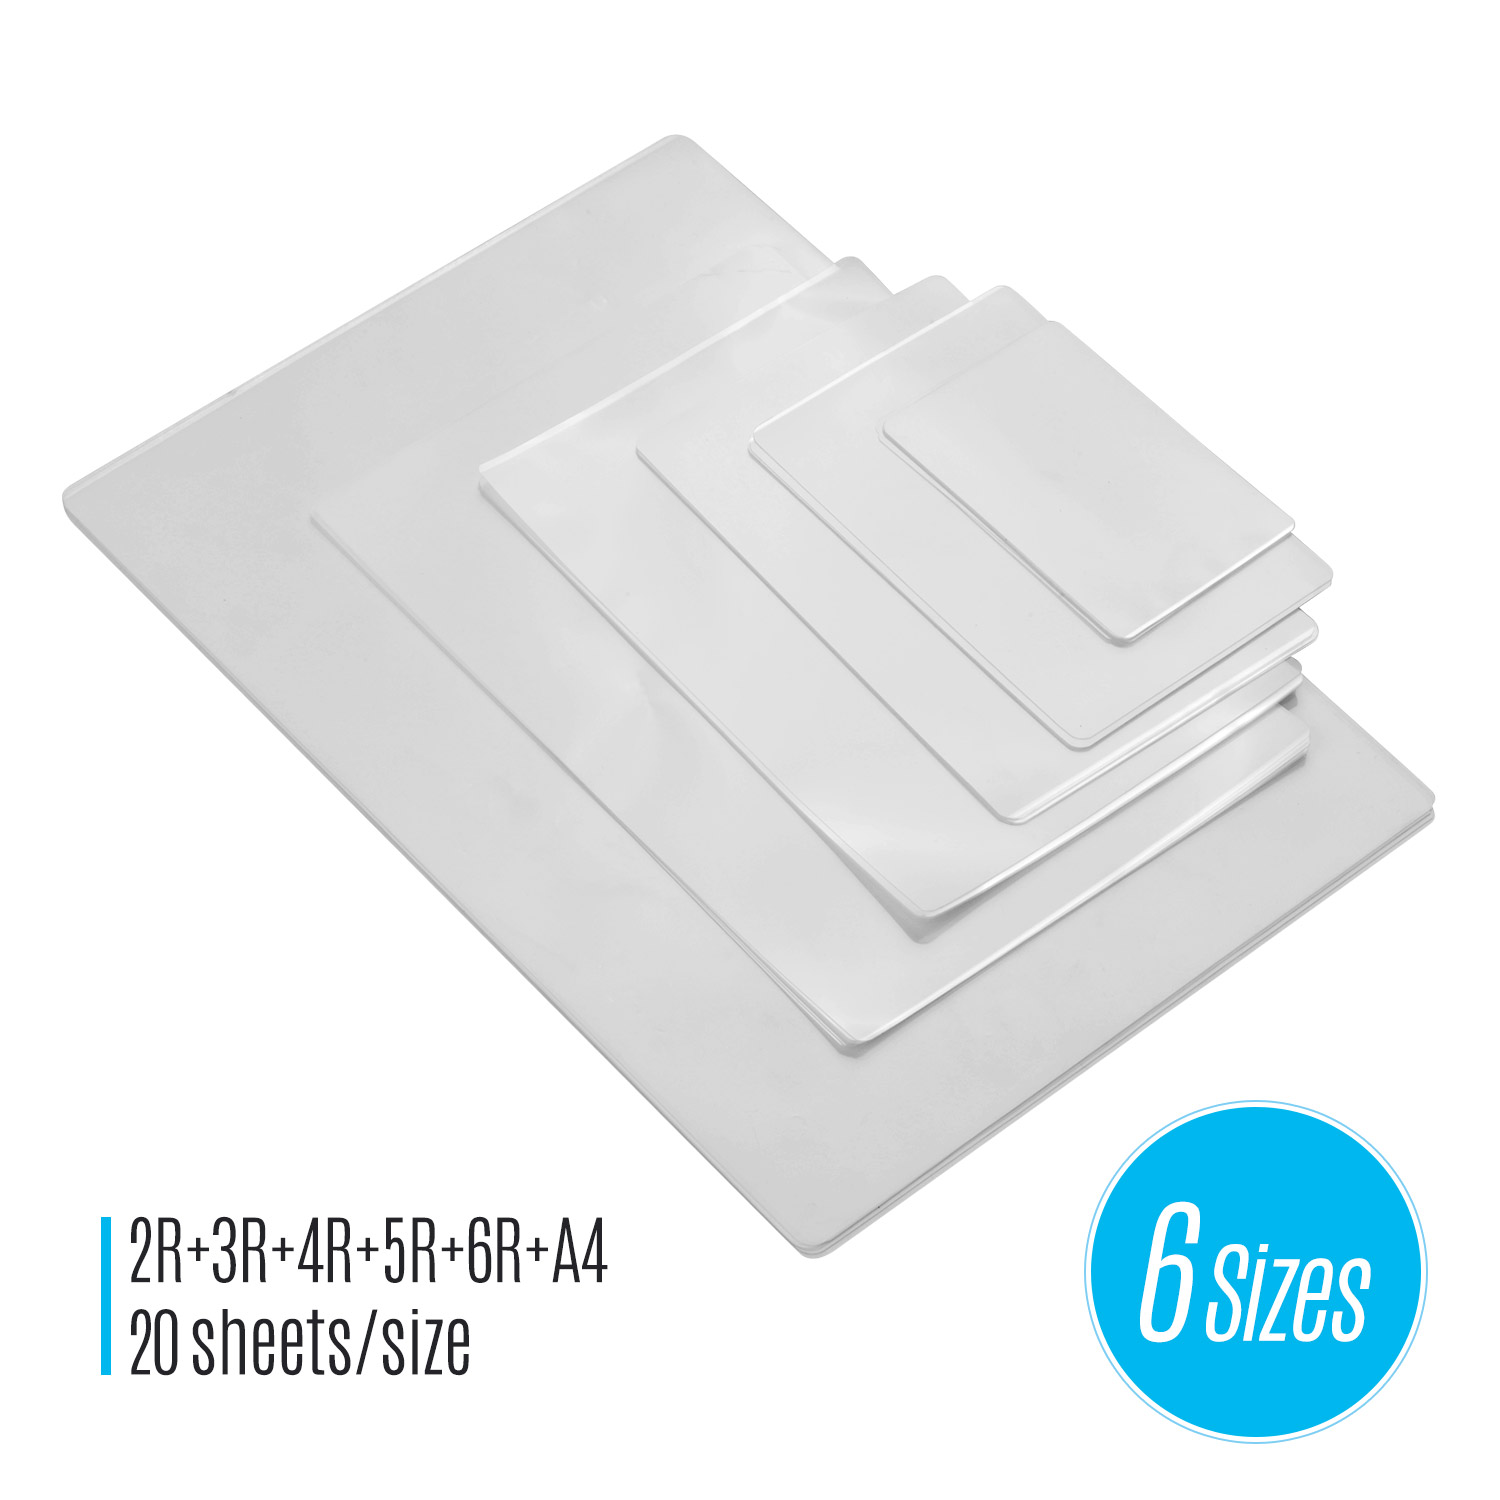 80mic Thermal Laminating Film Pouches PET Clear Sheet Photo Paper Document Picture Lamination For Laminating Machine Laminator